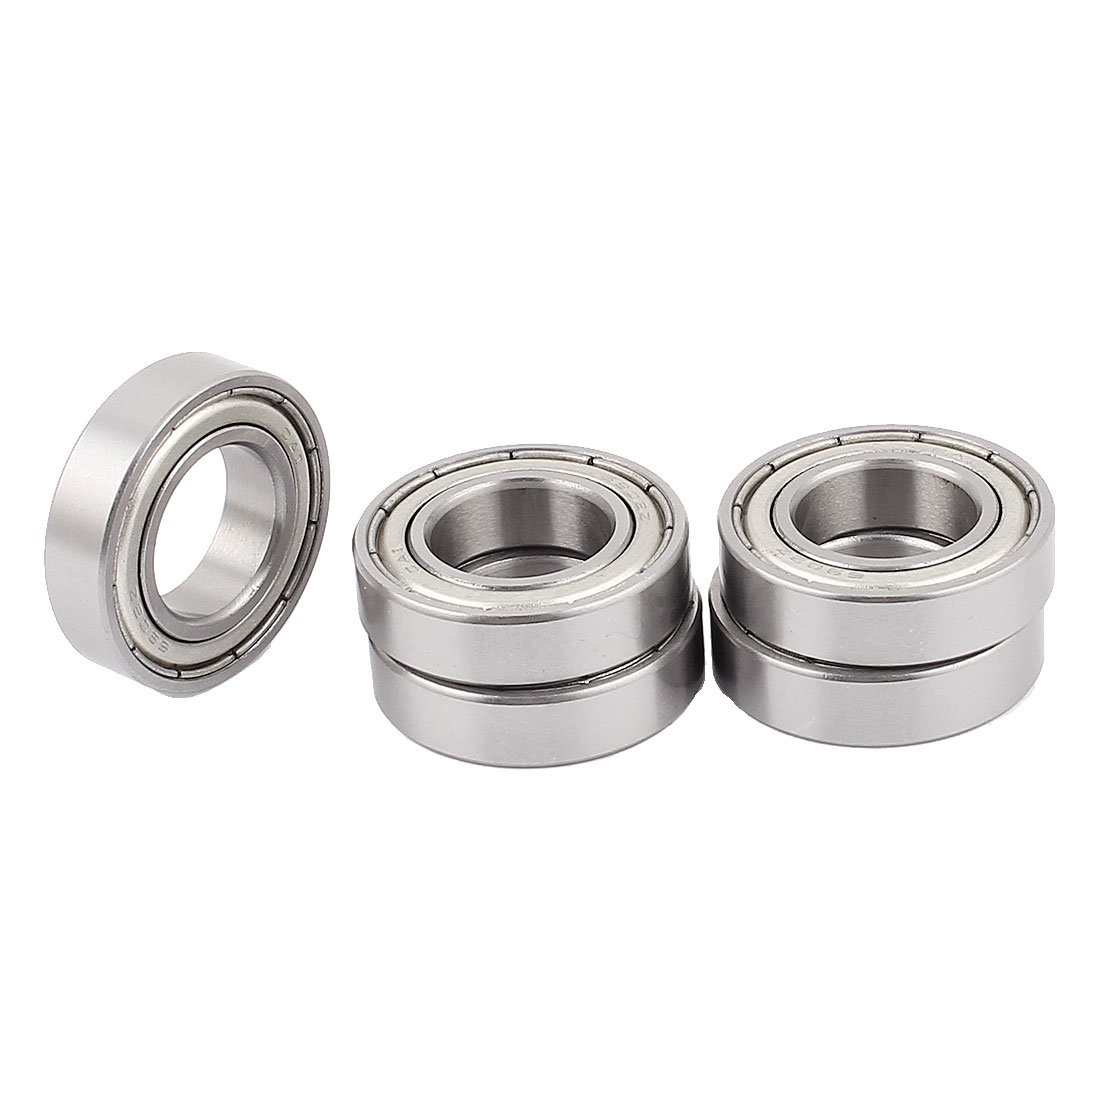 sourcingmap® 6902Z 15 x 28 x 7mm Shielded Deep Groove Radial Ball Bearing 5Pcs a15113000ux2187